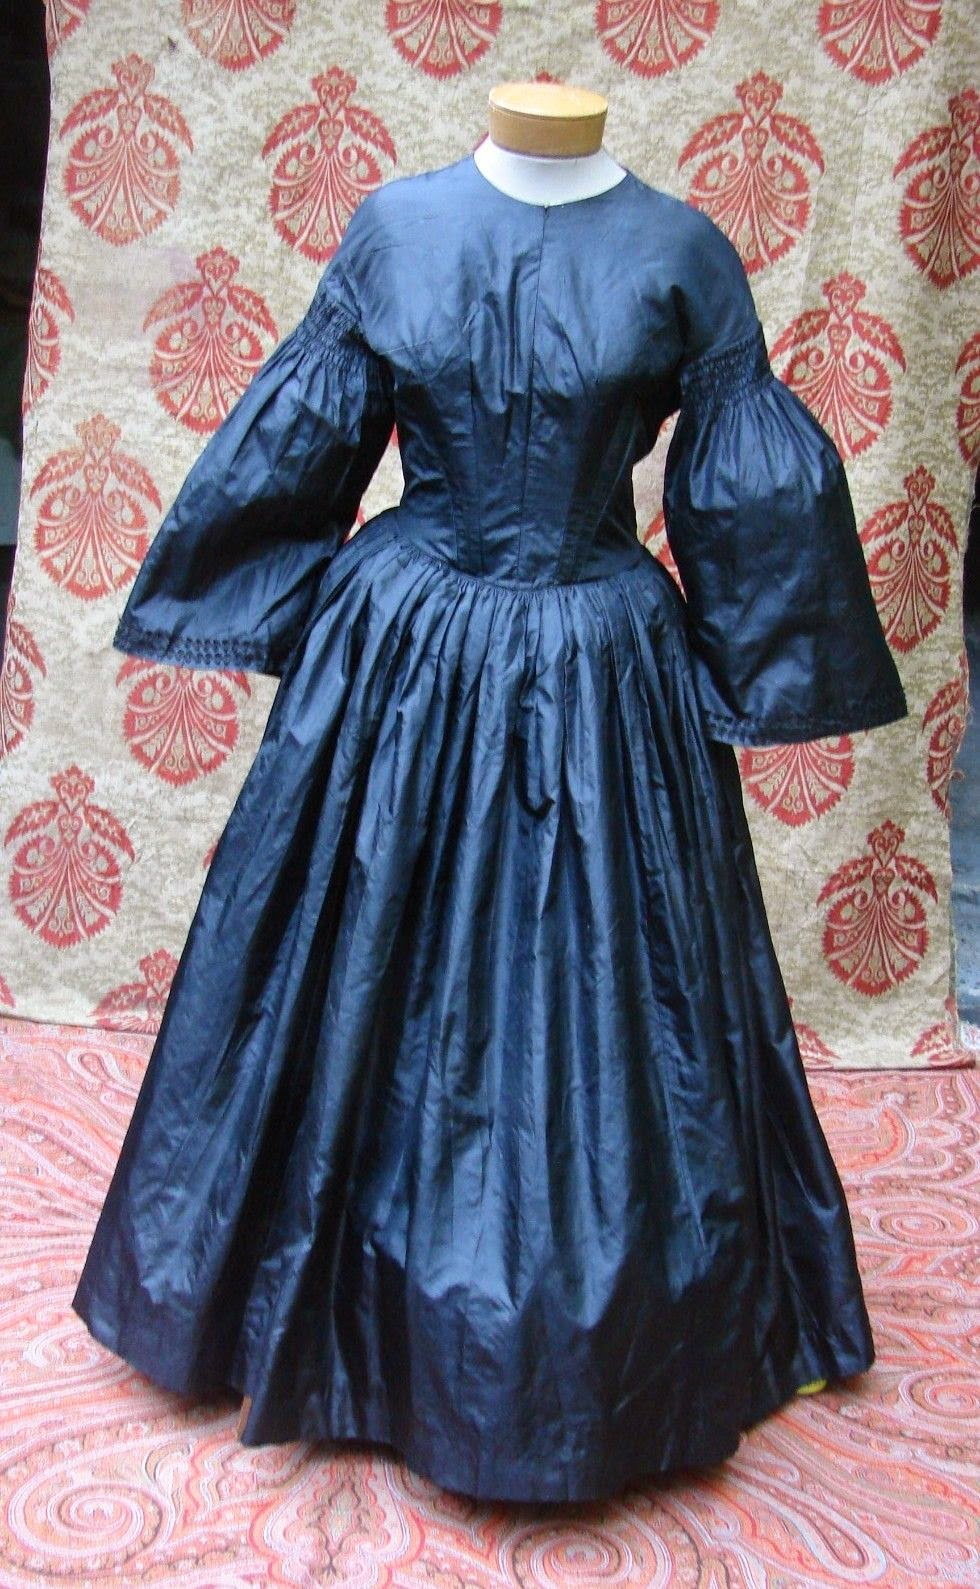 All The Pretty Dresses 1850 S Dress Redone In The 1860 S